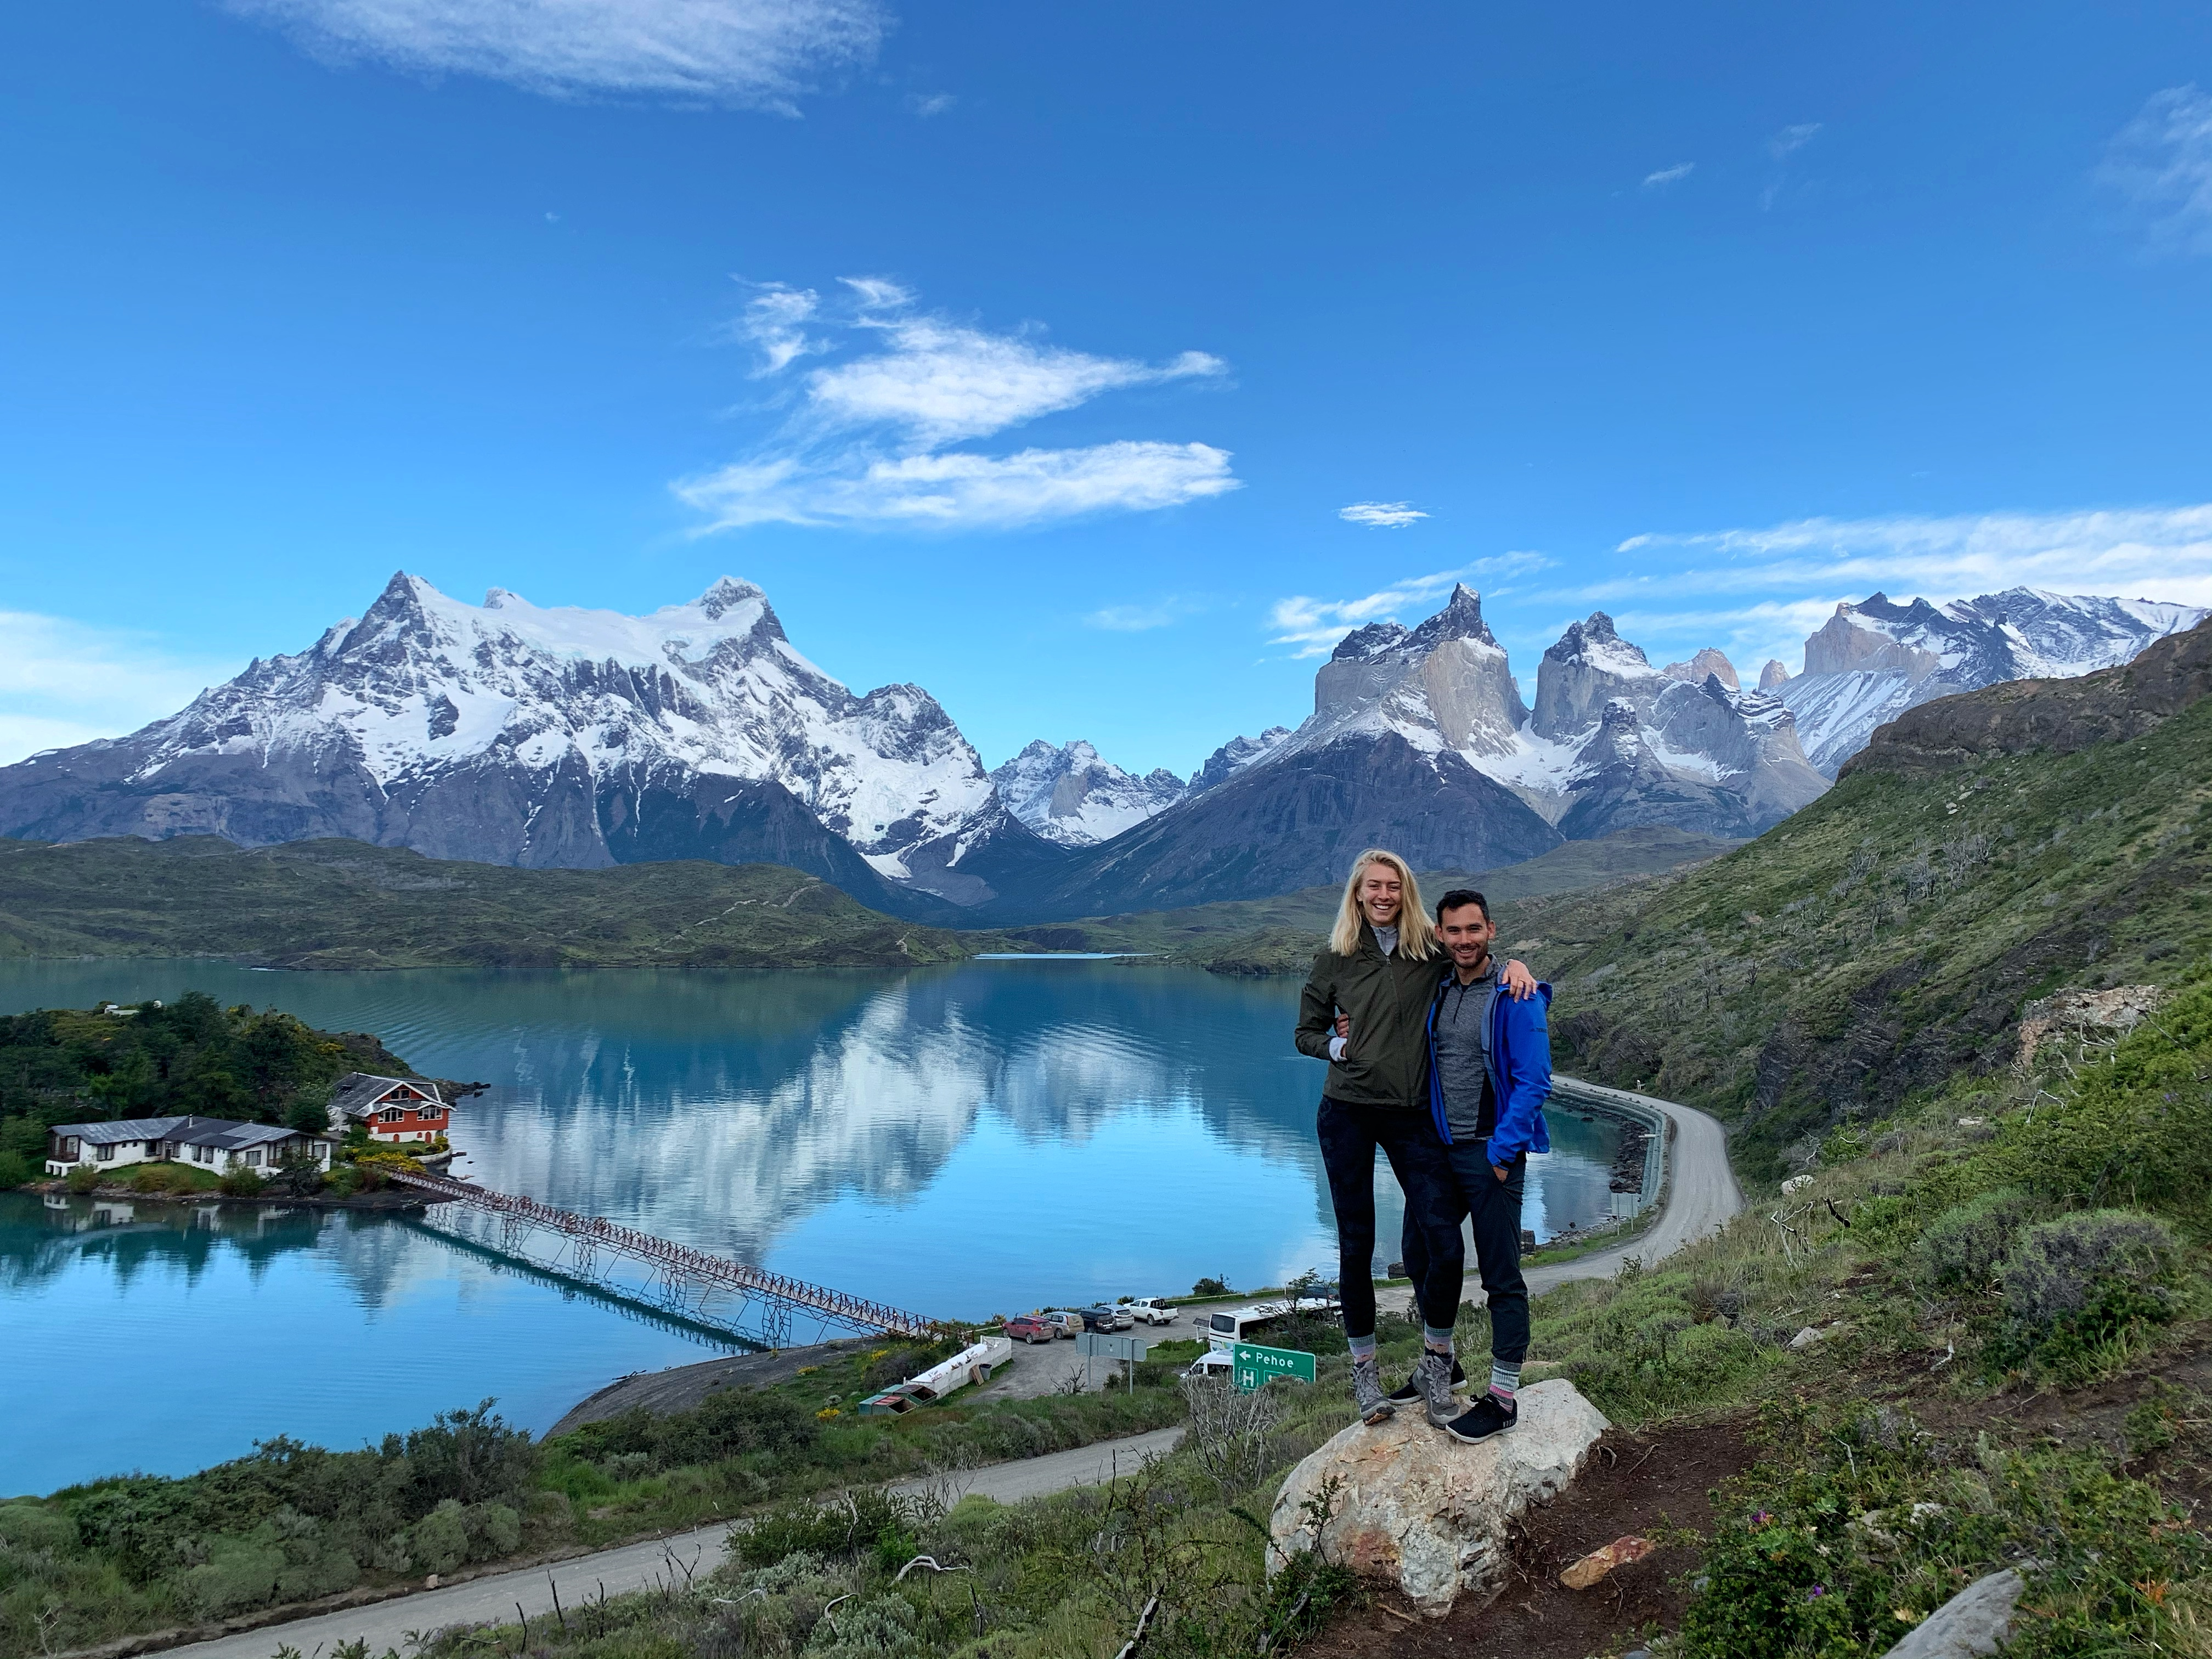 TORRES DEL PAINE TRAVEL GUIDE: Patagonia Hiking Tips & Tricks